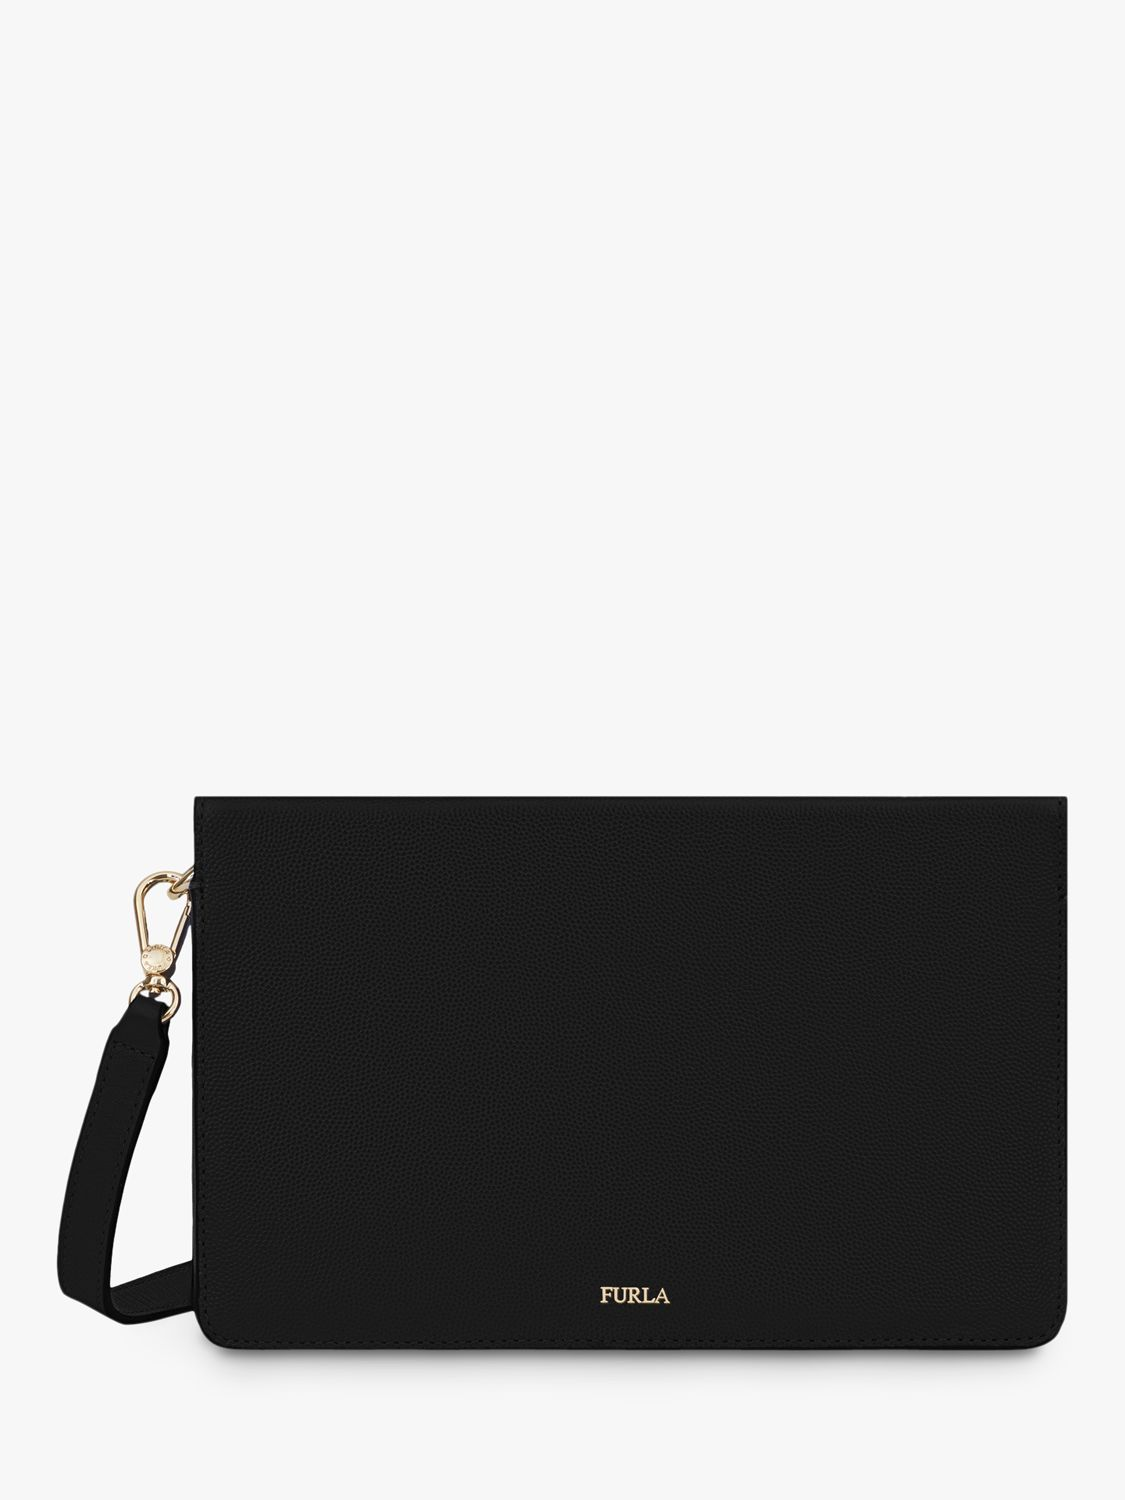 Furla Furla Babylon Leather Cross Body Bag, Black